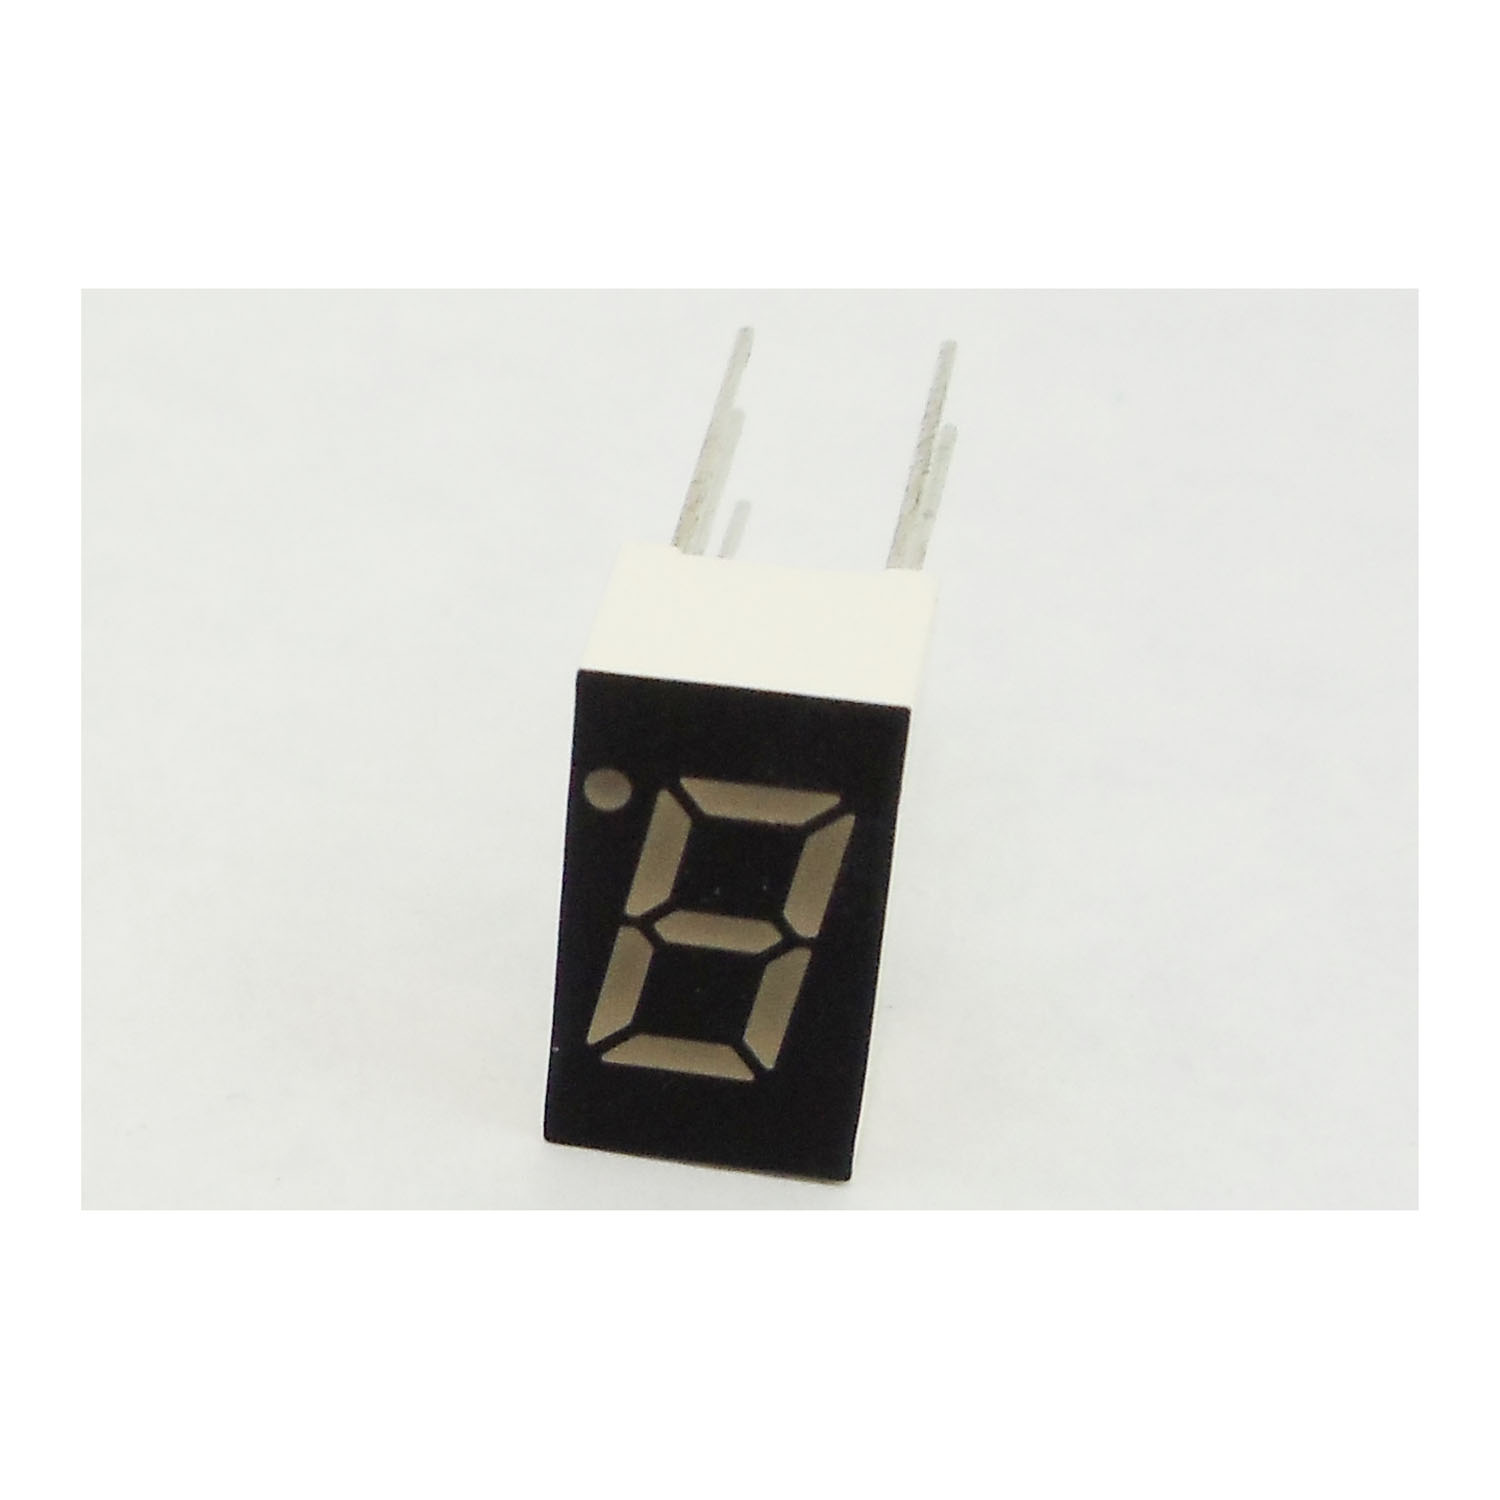 GALAXY - SINGLE DIGIT BLUE SEGMENT FREQUENCY DISPLAY FOR DX99V